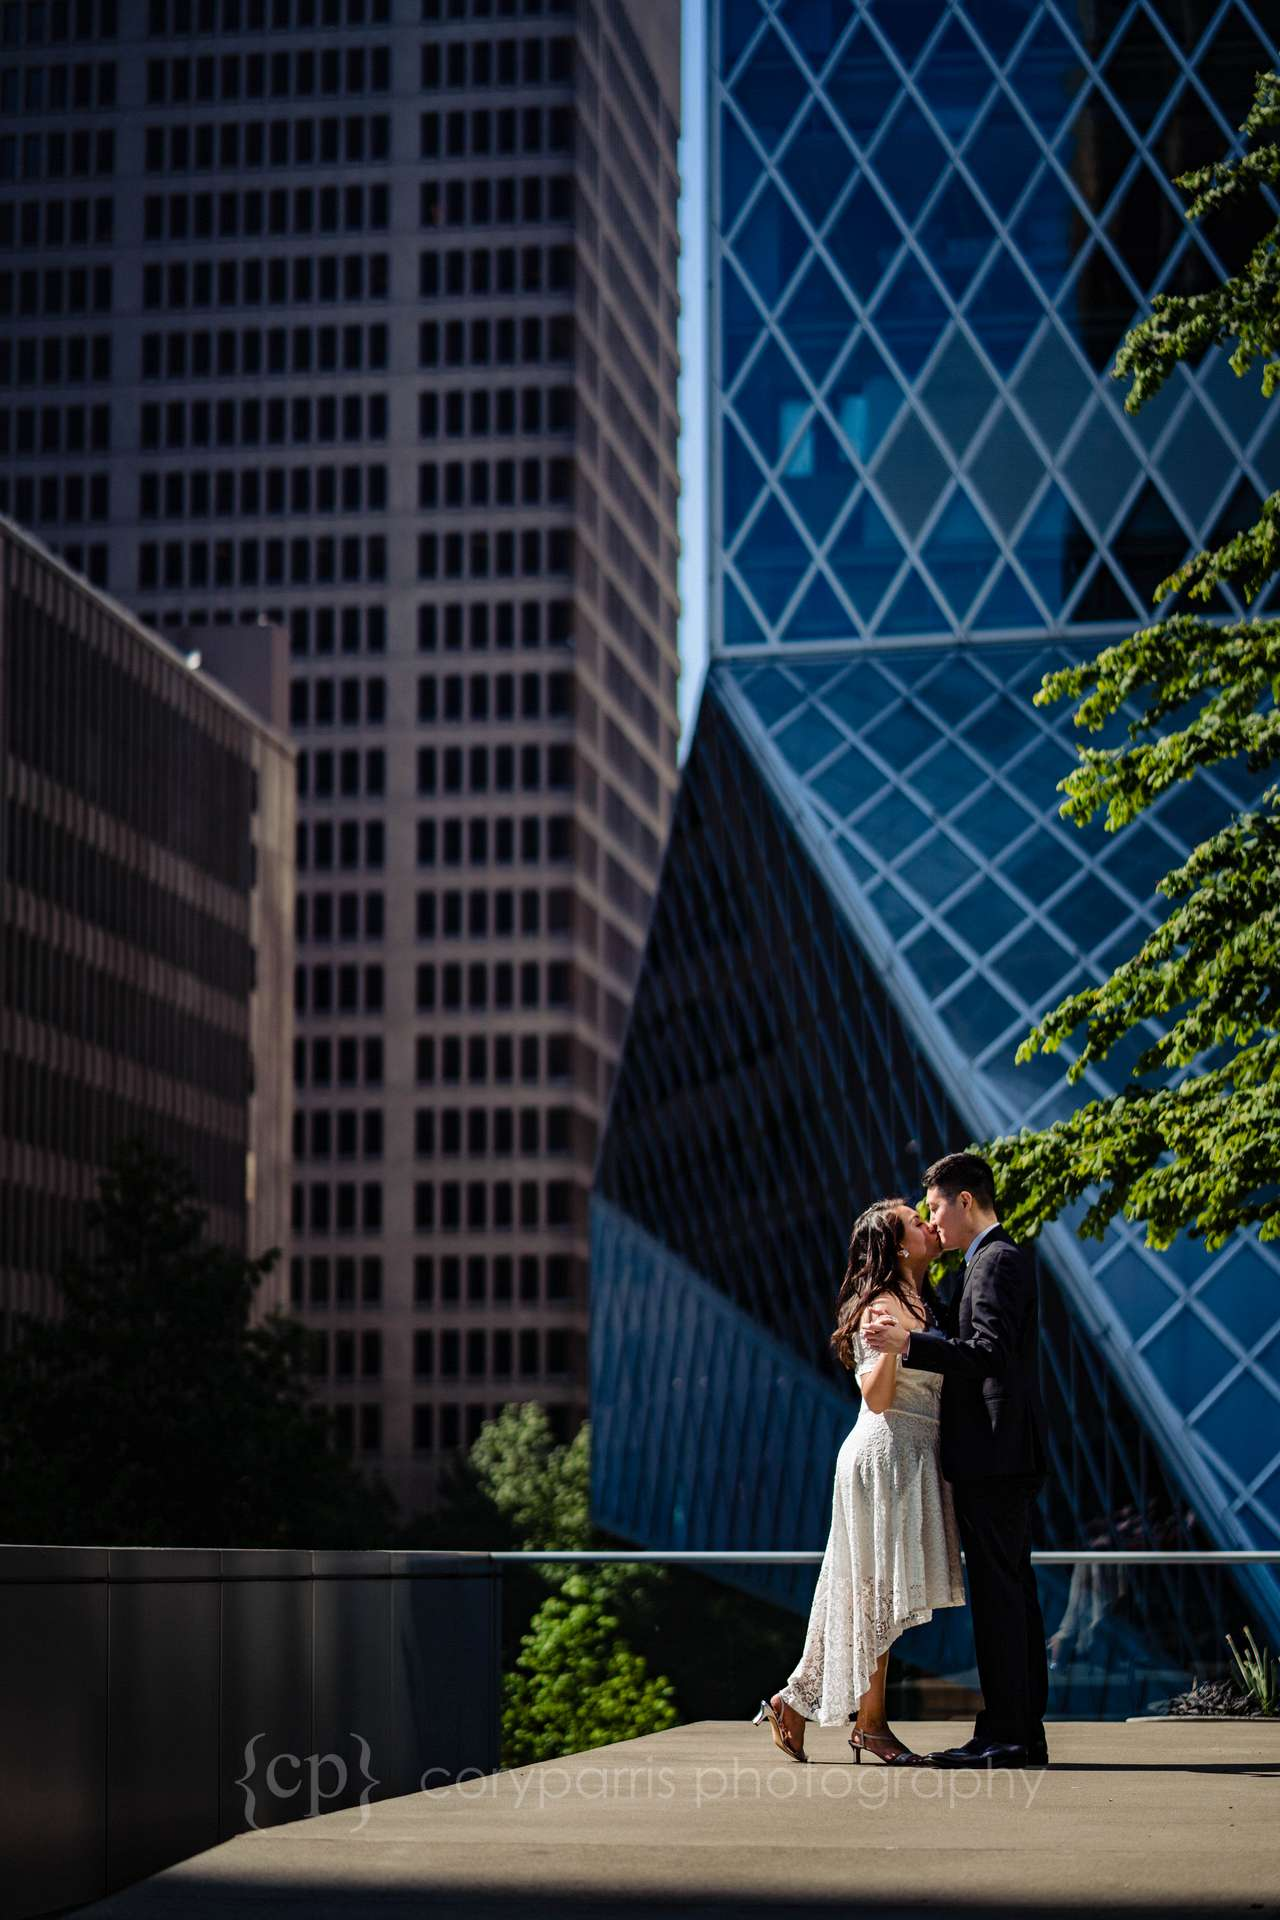 282-Seattle-Elopement-Courthouse.jpg